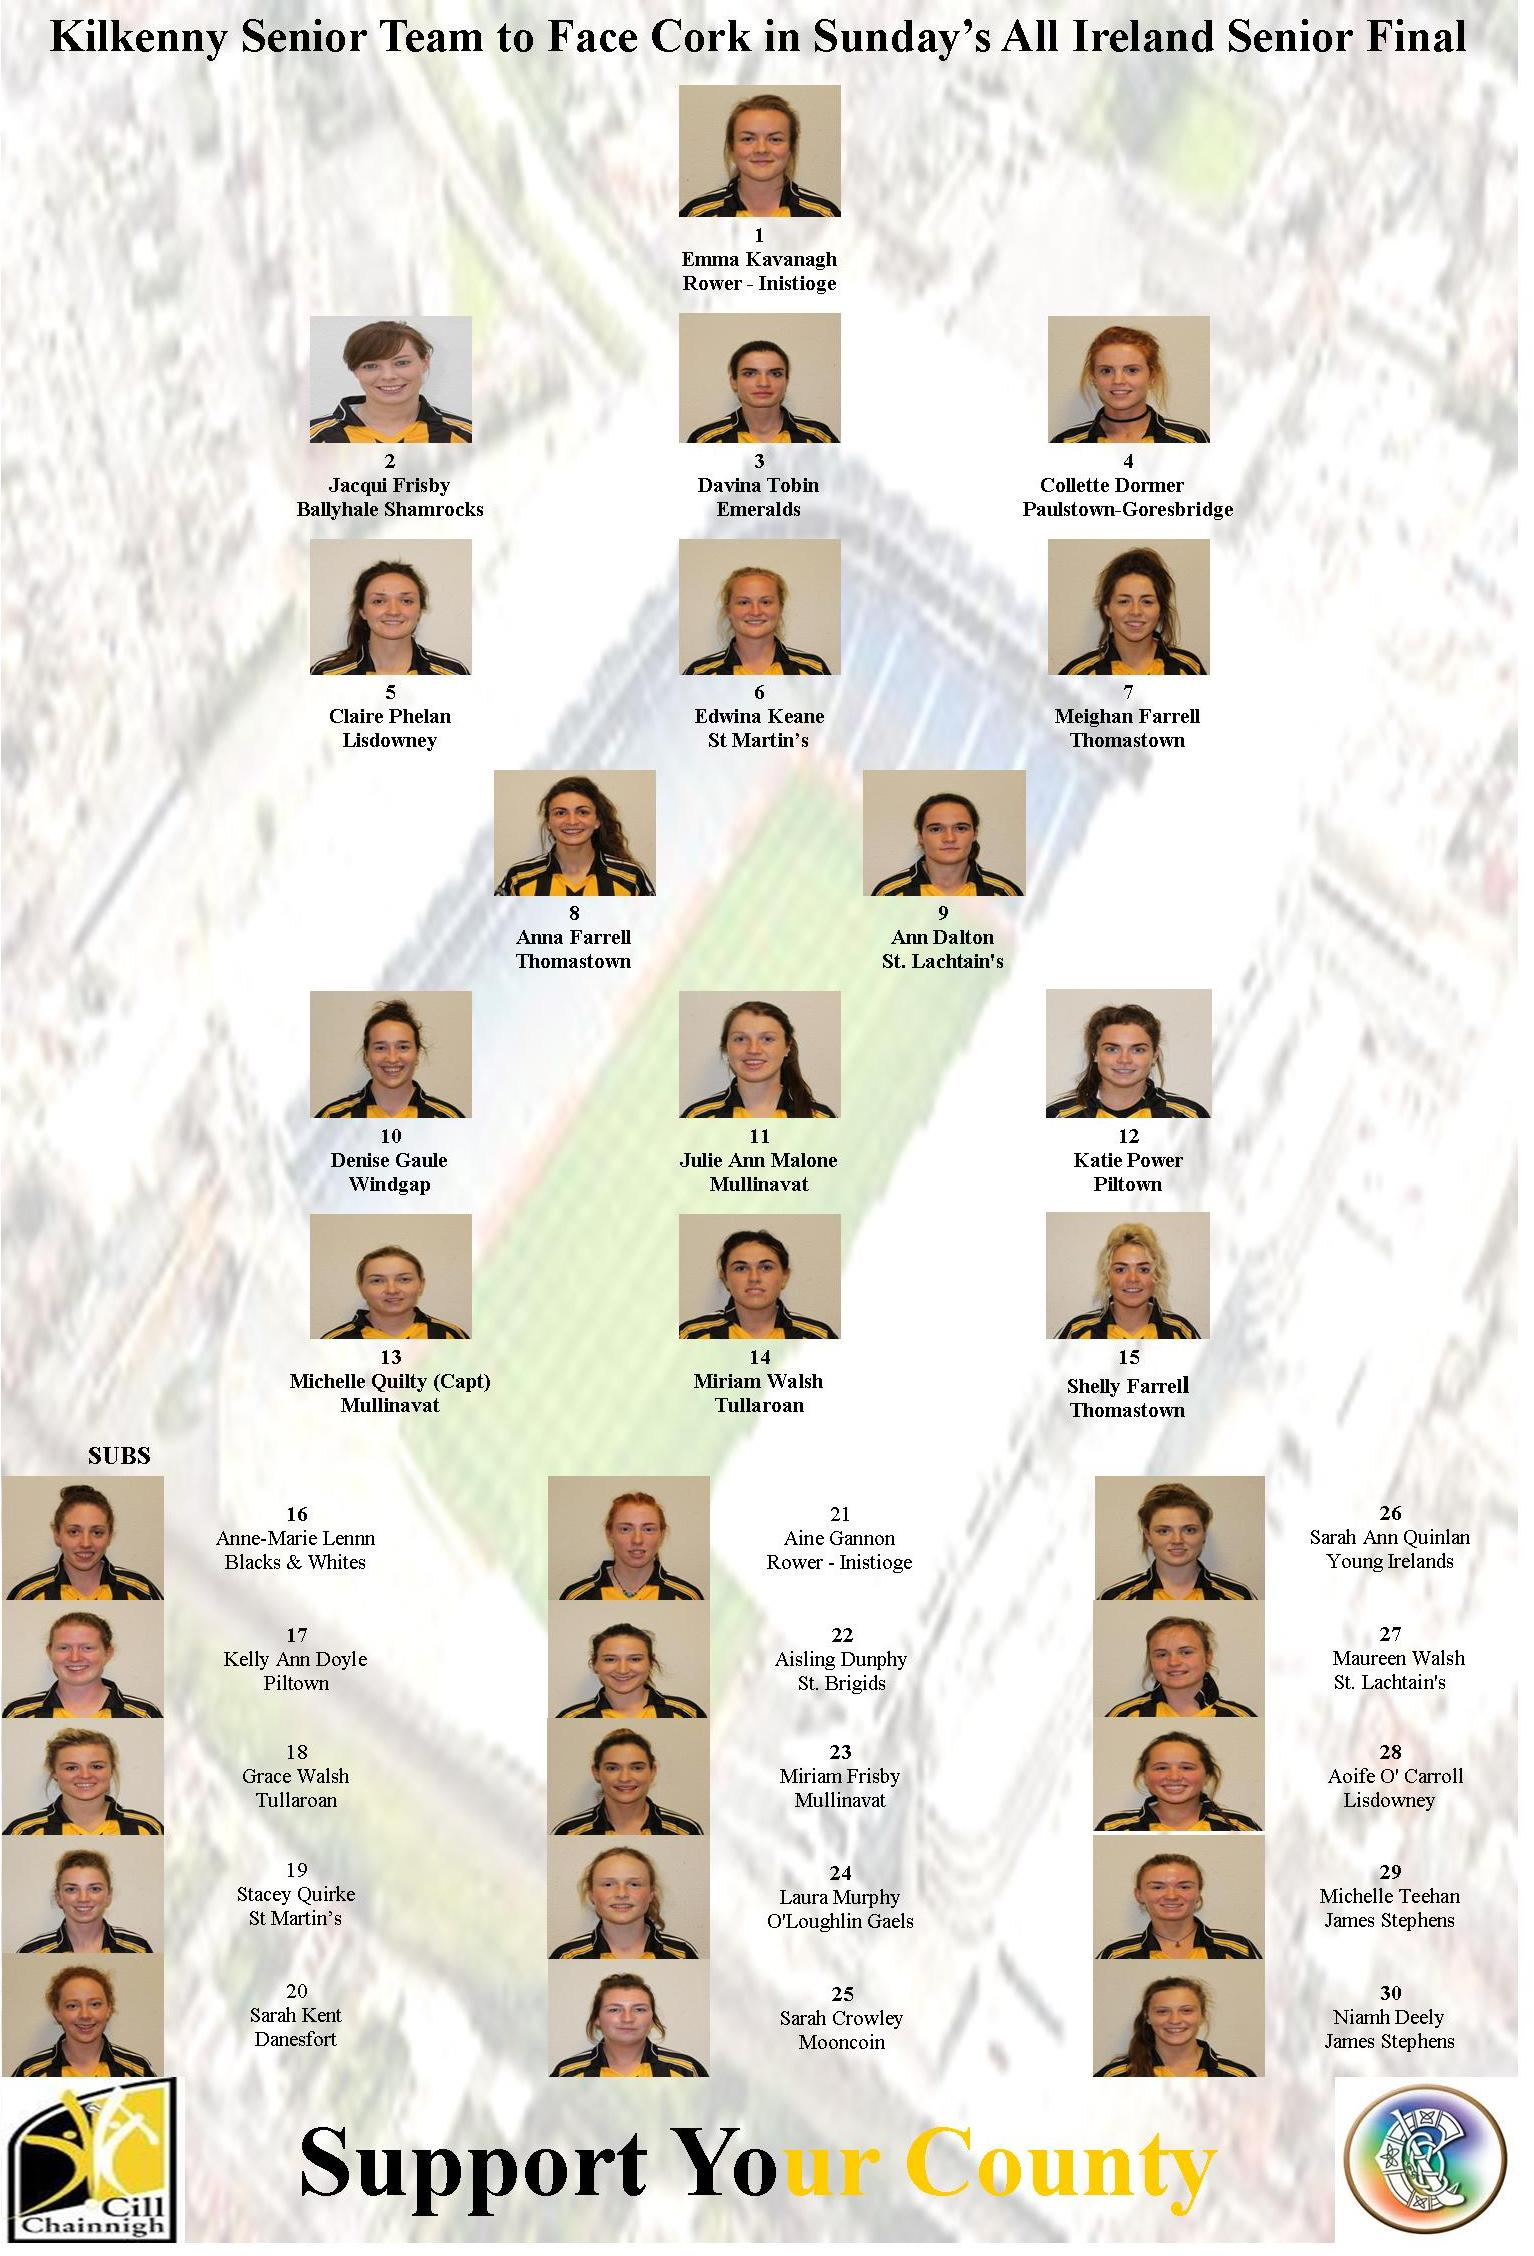 Kilkenny Senior Team